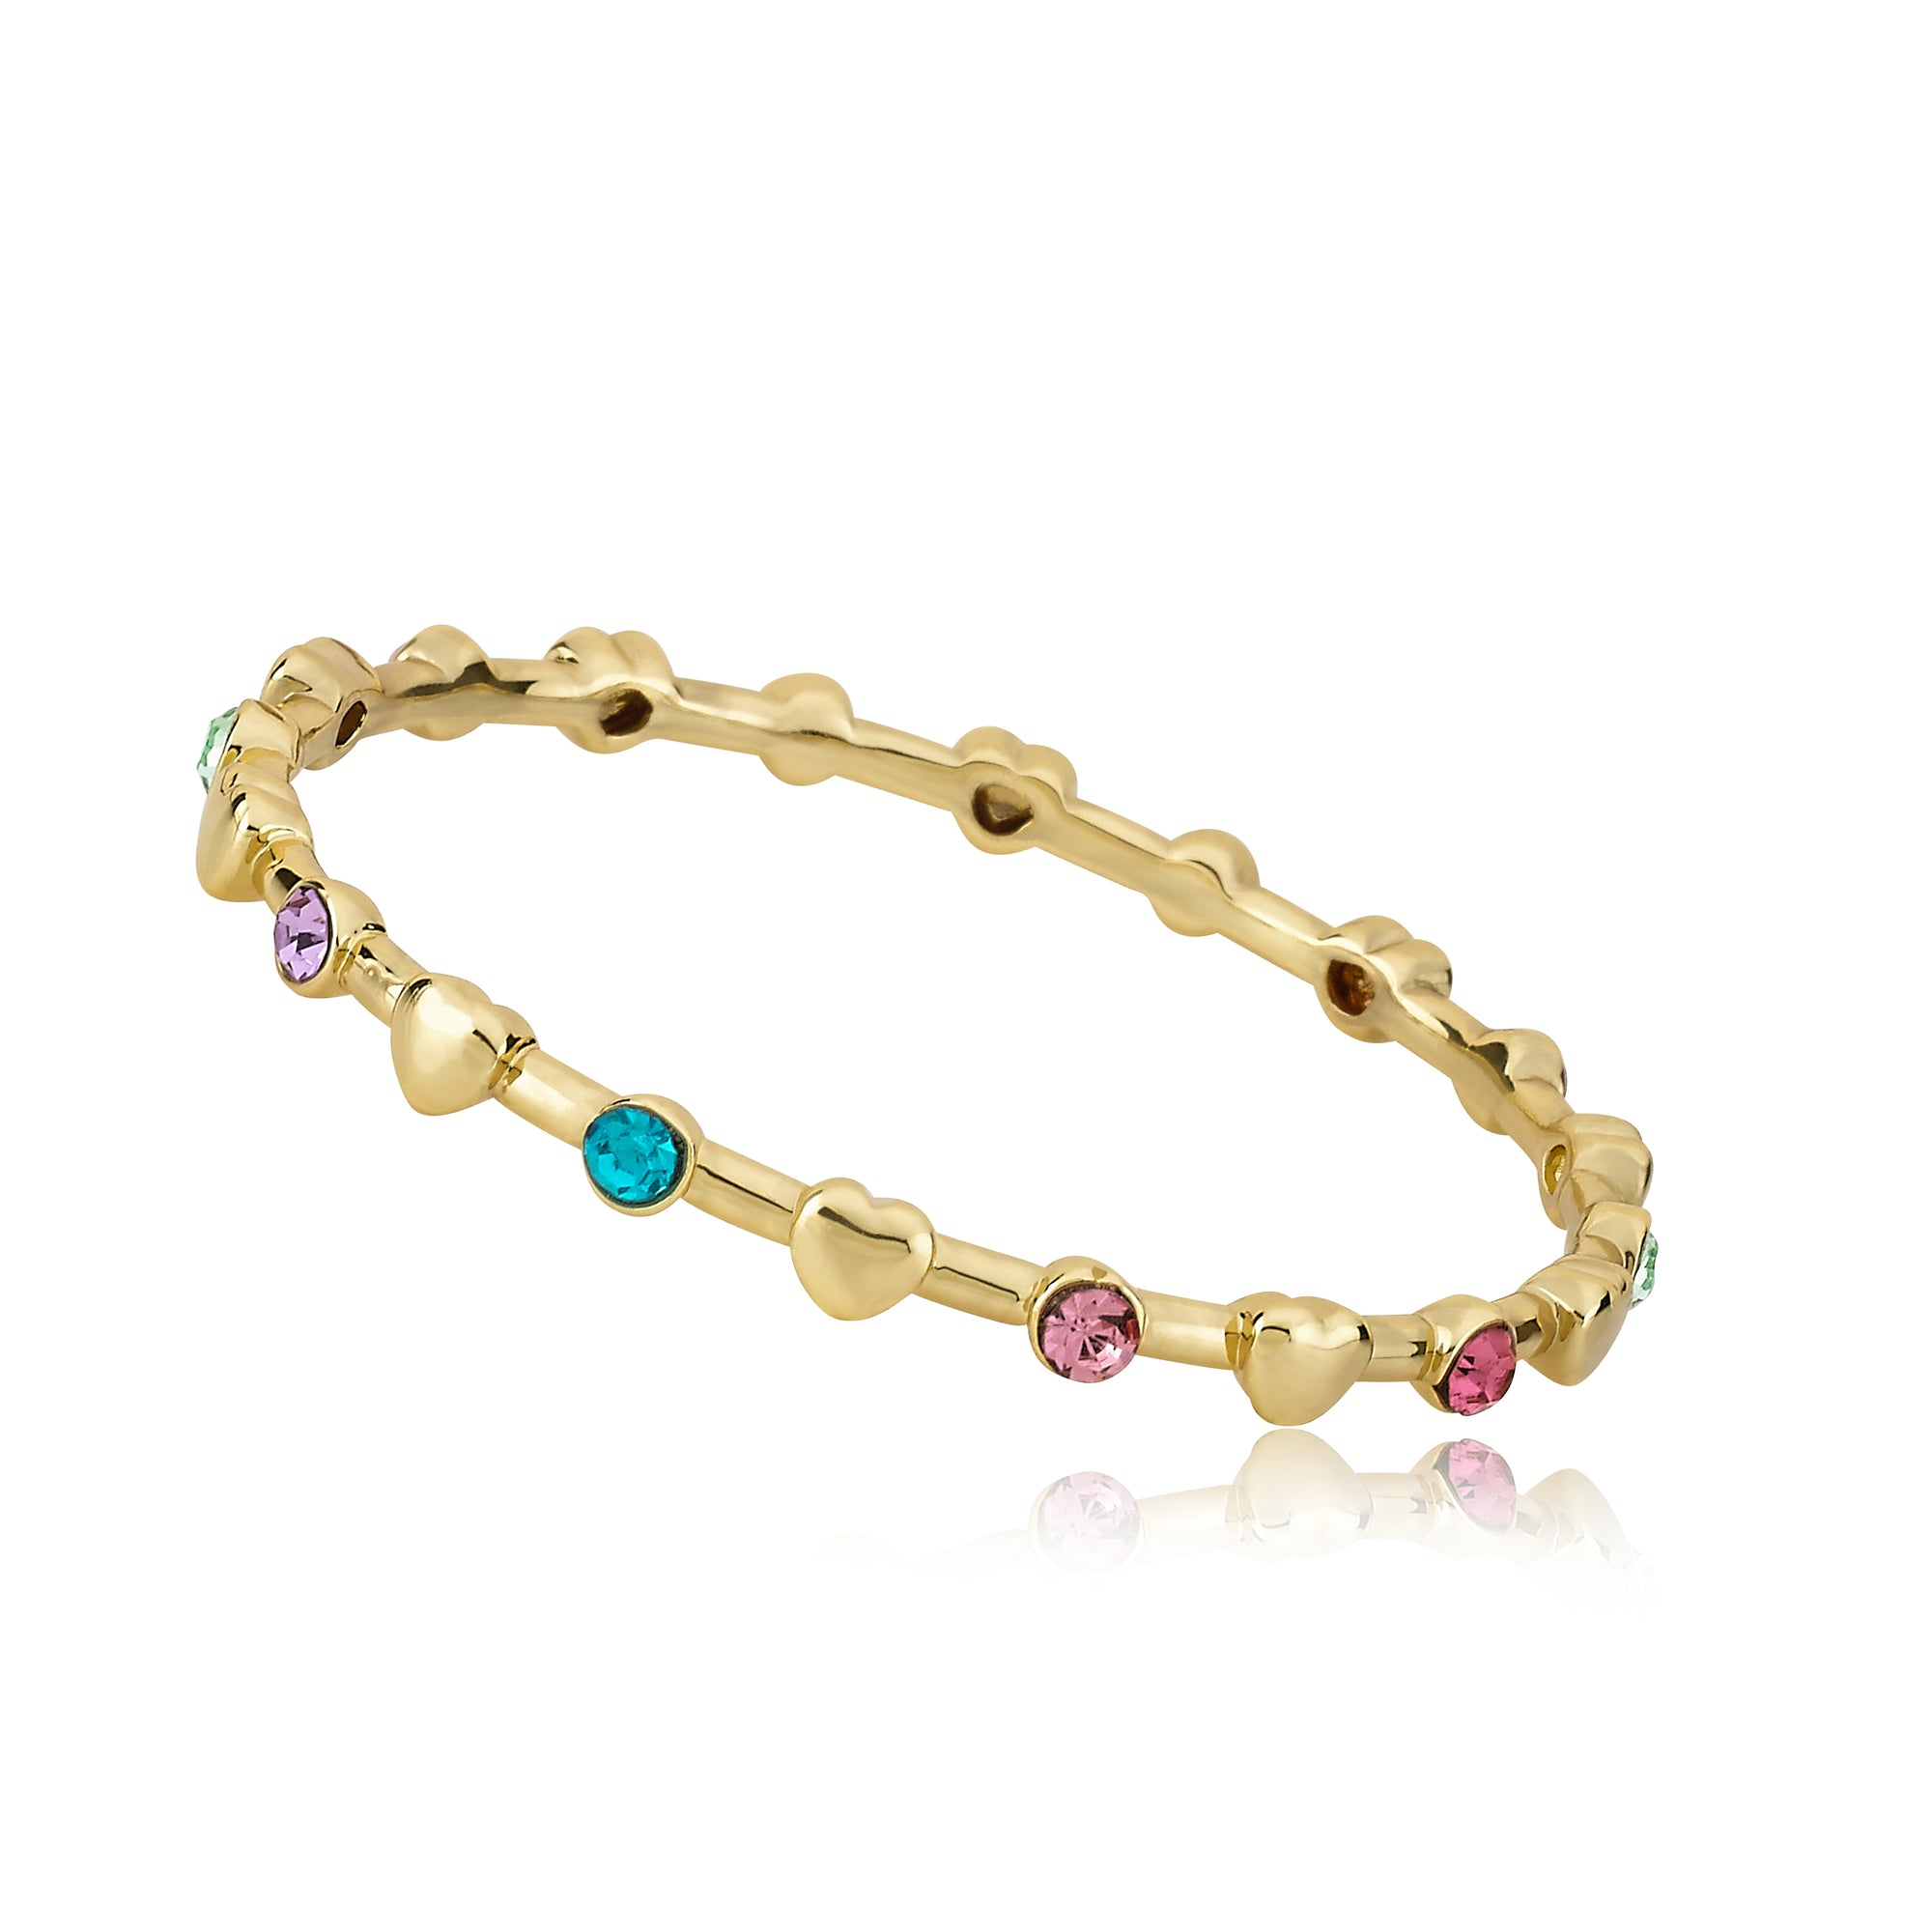 Twin Star LMTS Stackable Stunners 14k Gold Plated Multi Color Stones & Flower Station Bangle